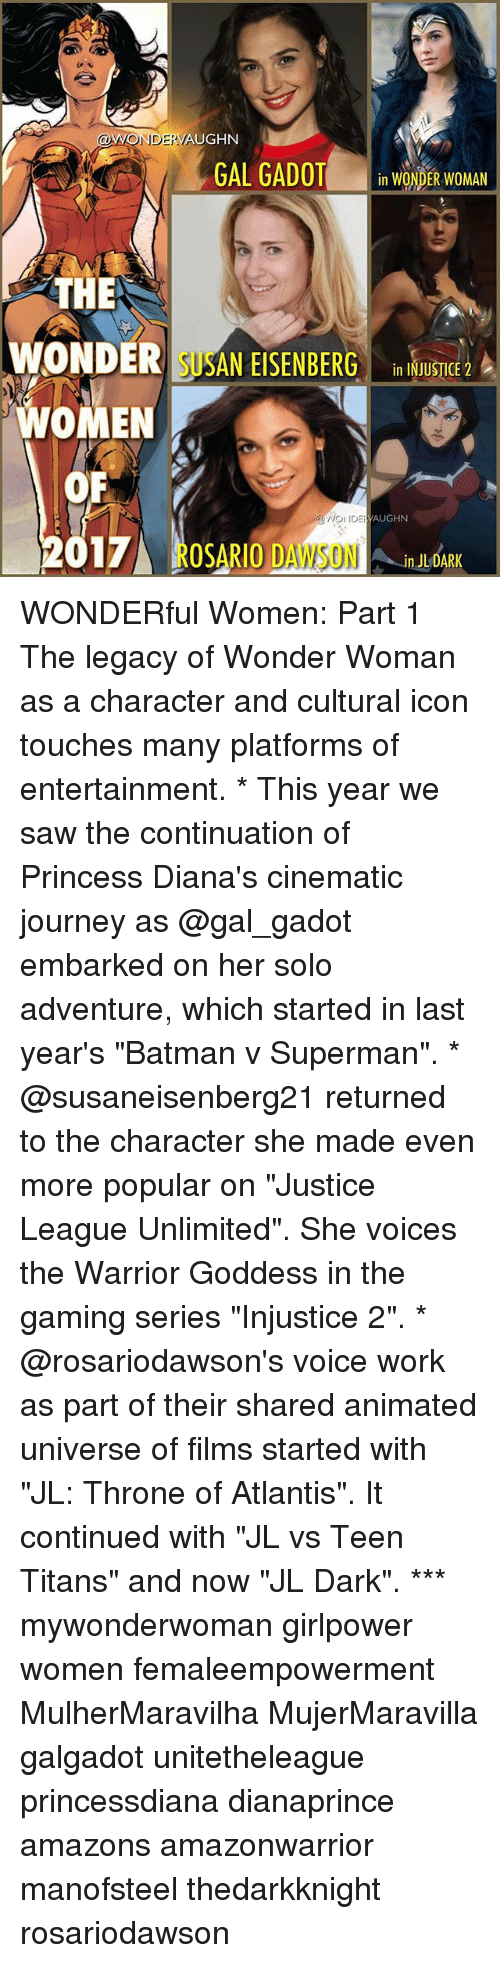 """Vaughn: VAUGHN  AONDERVA  GAL GADOT  in WONDER WOMAN  THE  WONDER SUSAN EISENBERG  in INJUSTICE 2  WOMEN  OF  VAUGHN  DE OSARIO DAWSON  2017  ULDARK WONDERful Women: Part 1 The legacy of Wonder Woman as a character and cultural icon touches many platforms of entertainment. * This year we saw the continuation of Princess Diana's cinematic journey as @gal_gadot embarked on her solo adventure, which started in last year's """"Batman v Superman"""". * @susaneisenberg21 returned to the character she made even more popular on """"Justice League Unlimited"""". She voices the Warrior Goddess in the gaming series """"Injustice 2"""". * @rosariodawson's voice work as part of their shared animated universe of films started with """"JL: Throne of Atlantis"""". It continued with """"JL vs Teen Titans"""" and now """"JL Dark"""". *** mywonderwoman girlpower women femaleempowerment MulherMaravilha MujerMaravilla galgadot unitetheleague princessdiana dianaprince amazons amazonwarrior manofsteel thedarkknight rosariodawson"""